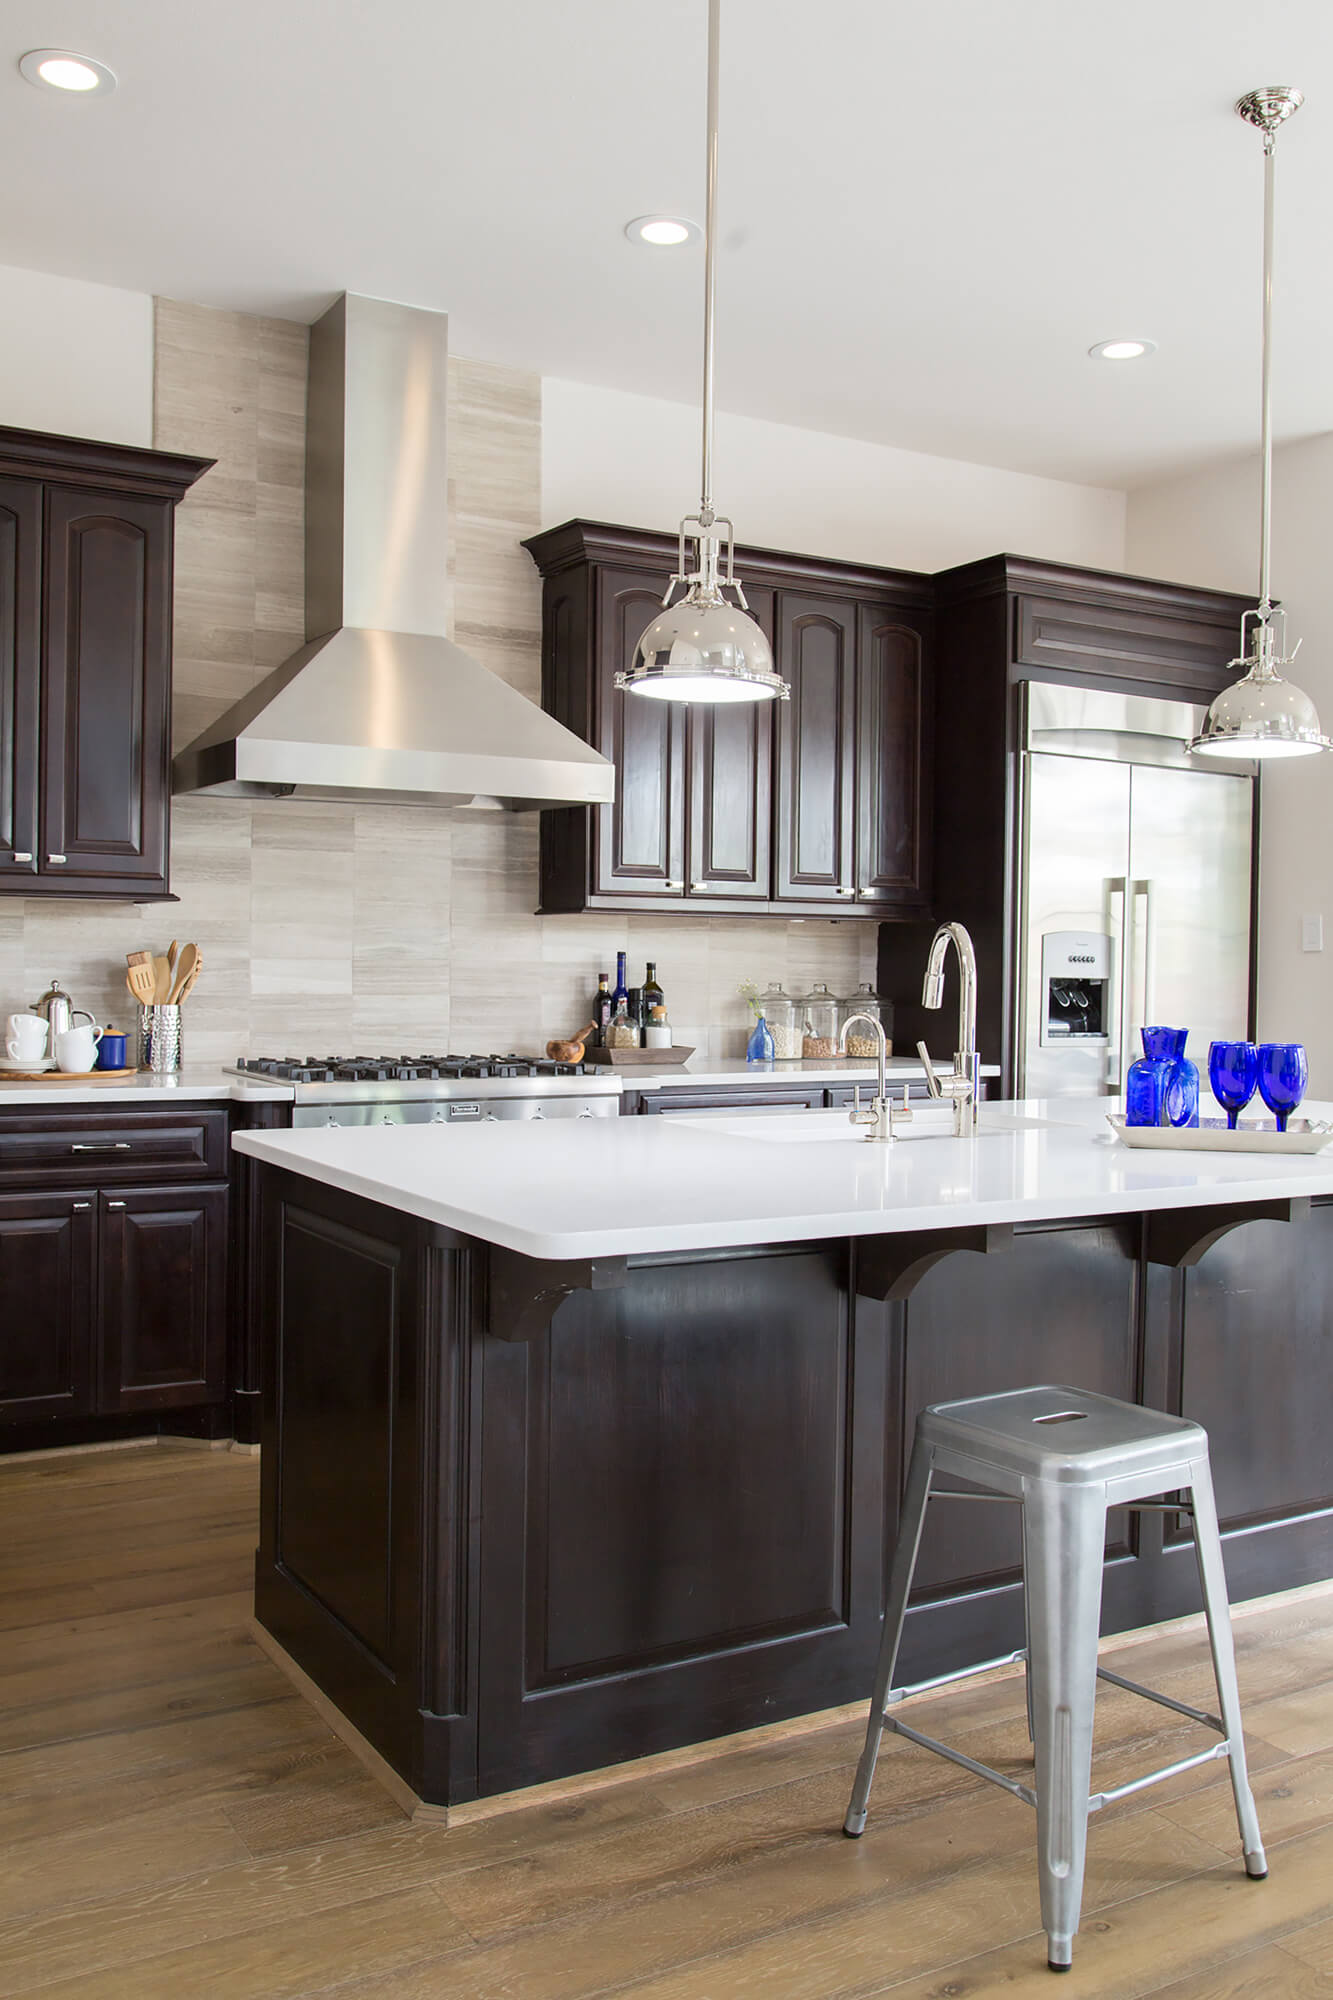 Countertops And Backsplash Combinations When To Use A Natural Stone Backsplash And When Not To Designed